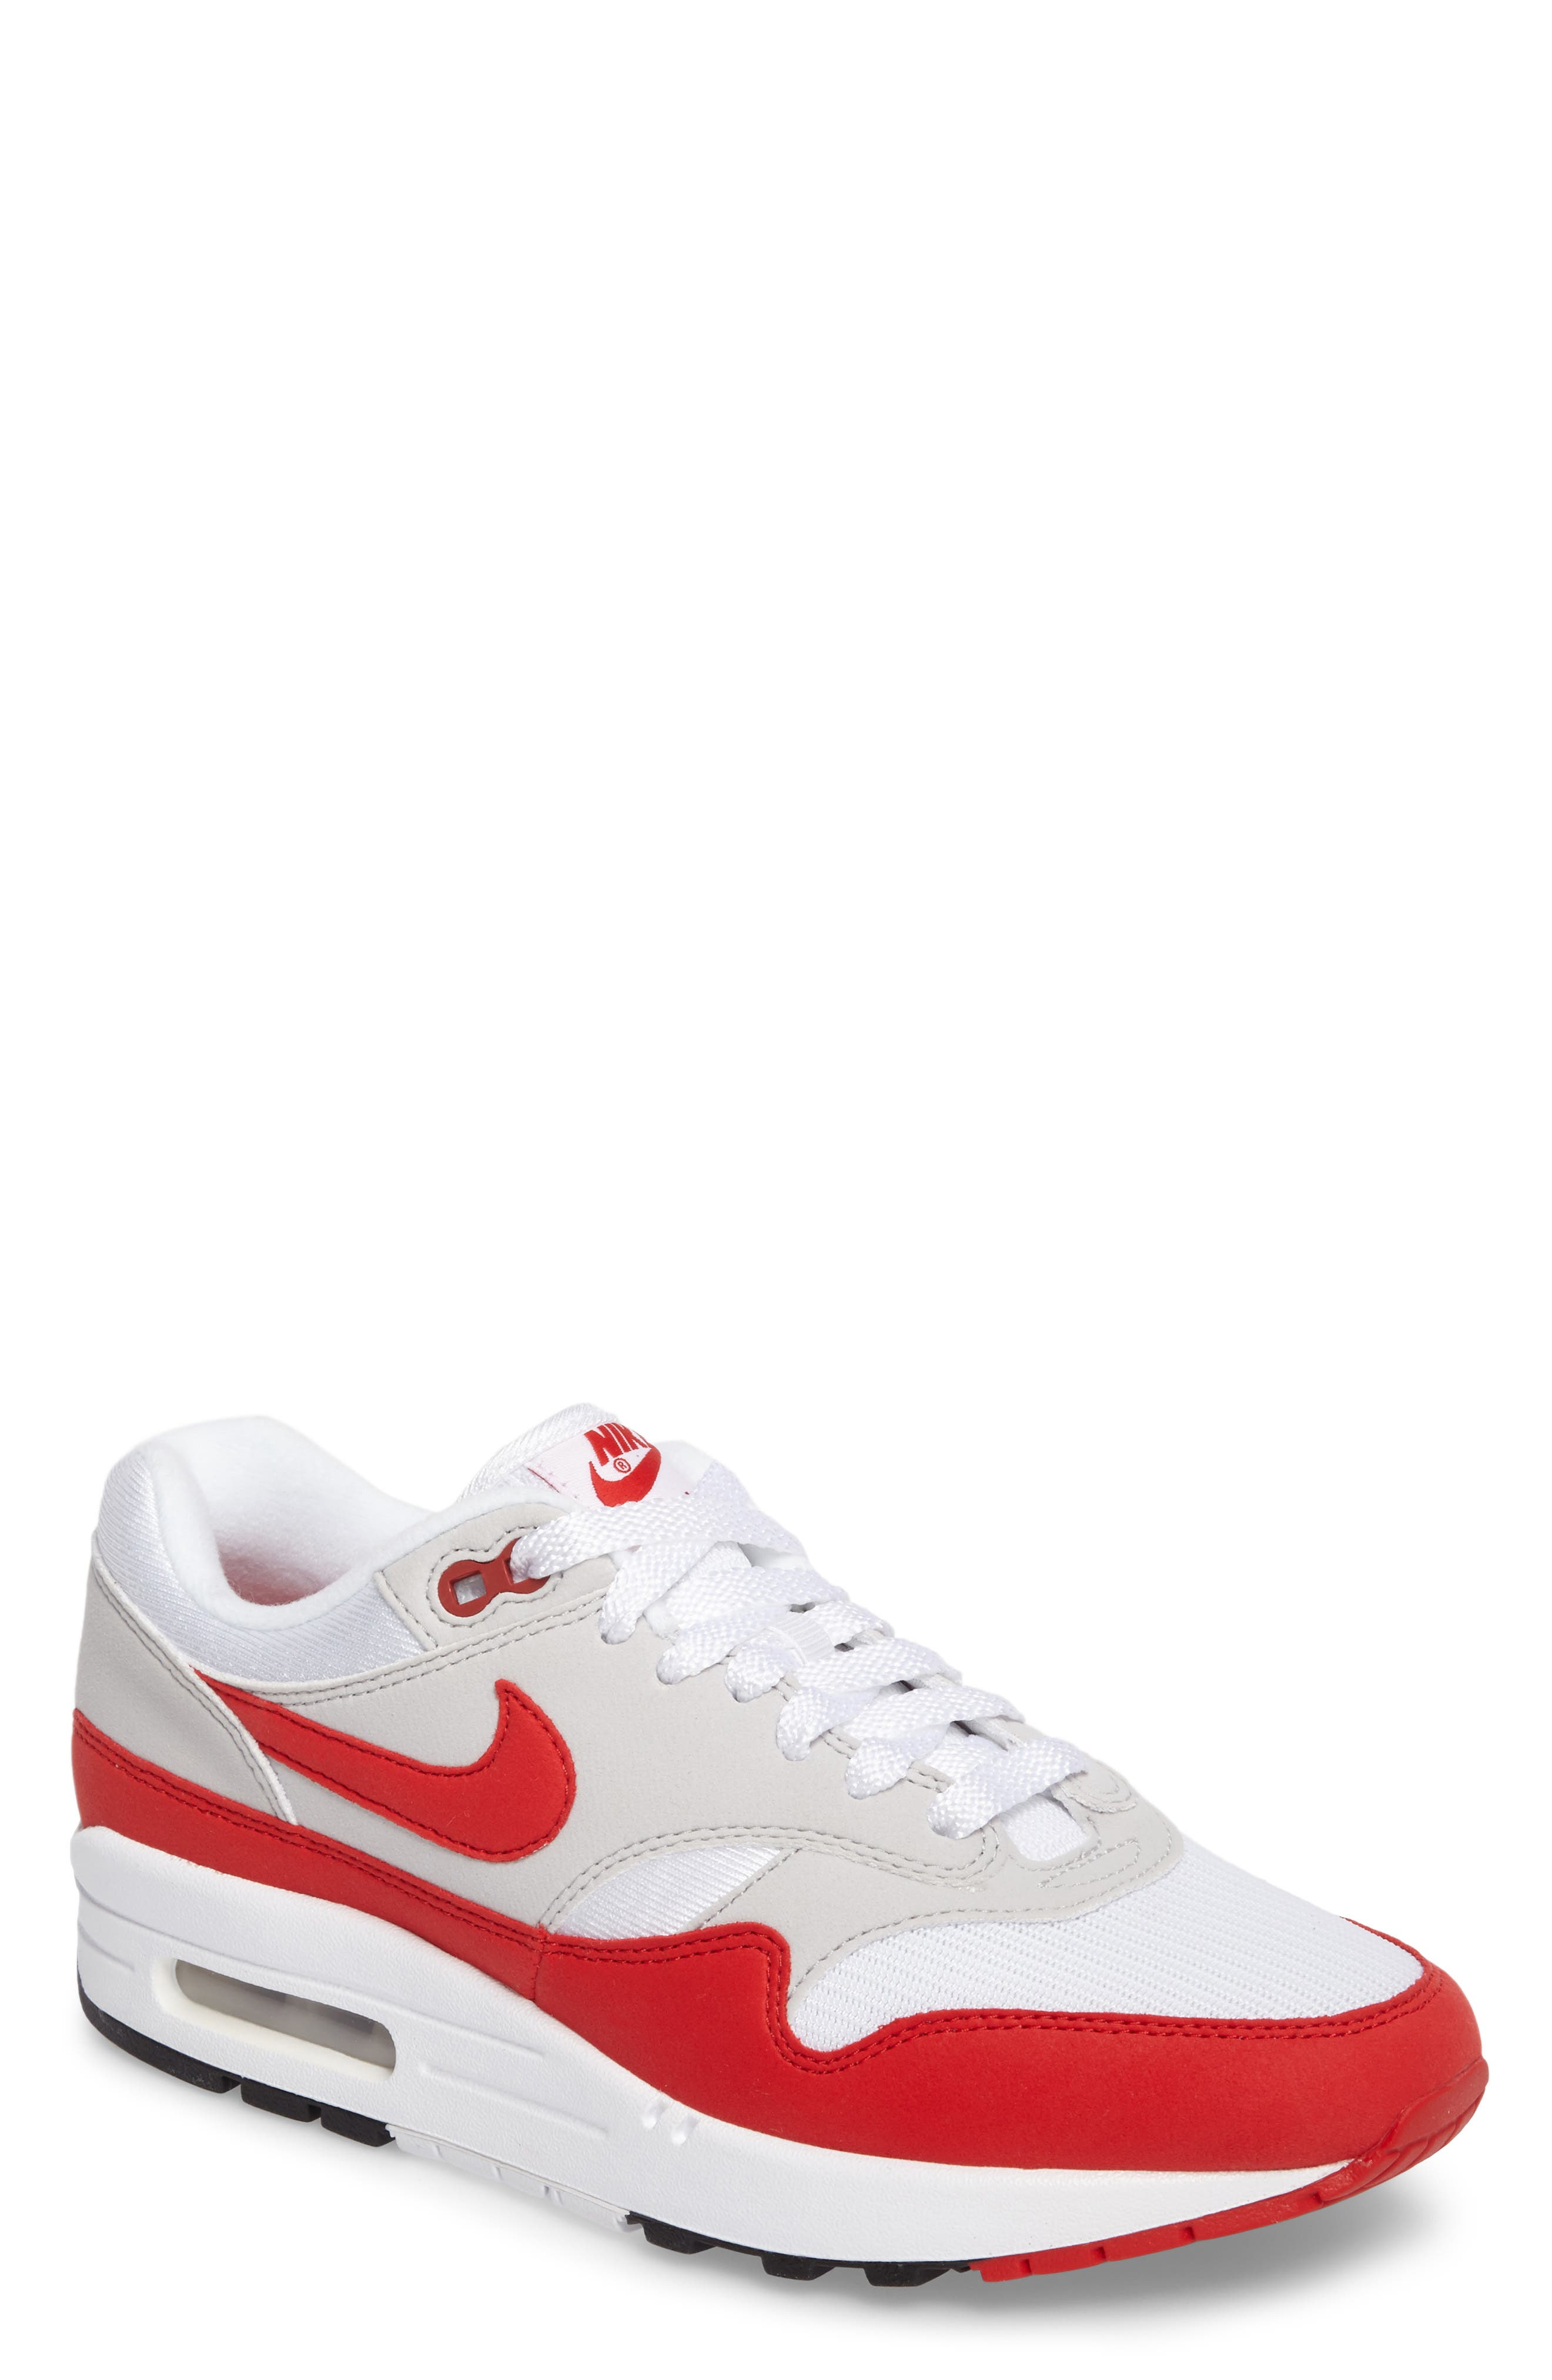 Air Max 1 Anniversary Sneaker,                             Main thumbnail 1, color,                             WHITE/ RED/ GREY/ BLACK